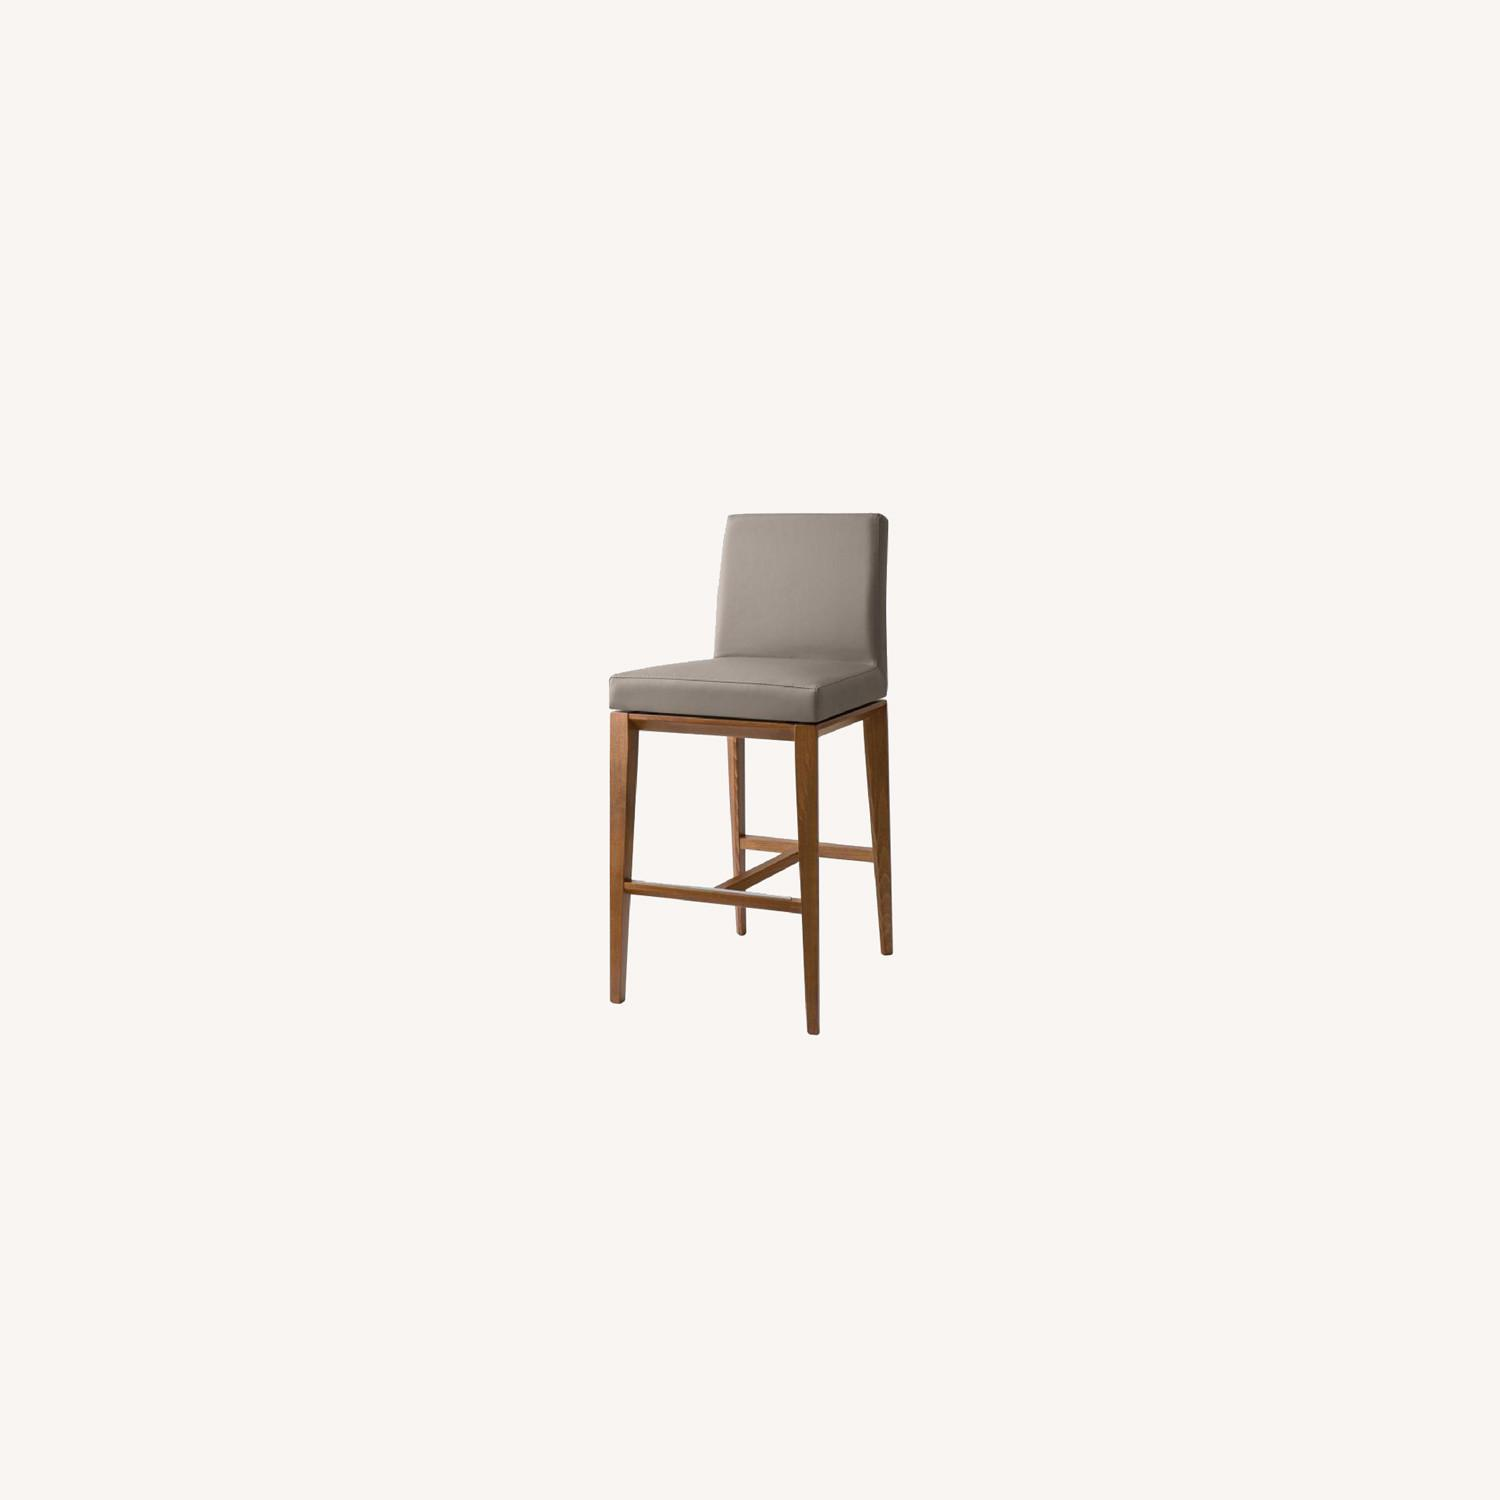 Calligaris Bess Barstools -Taupe Leather - image-0